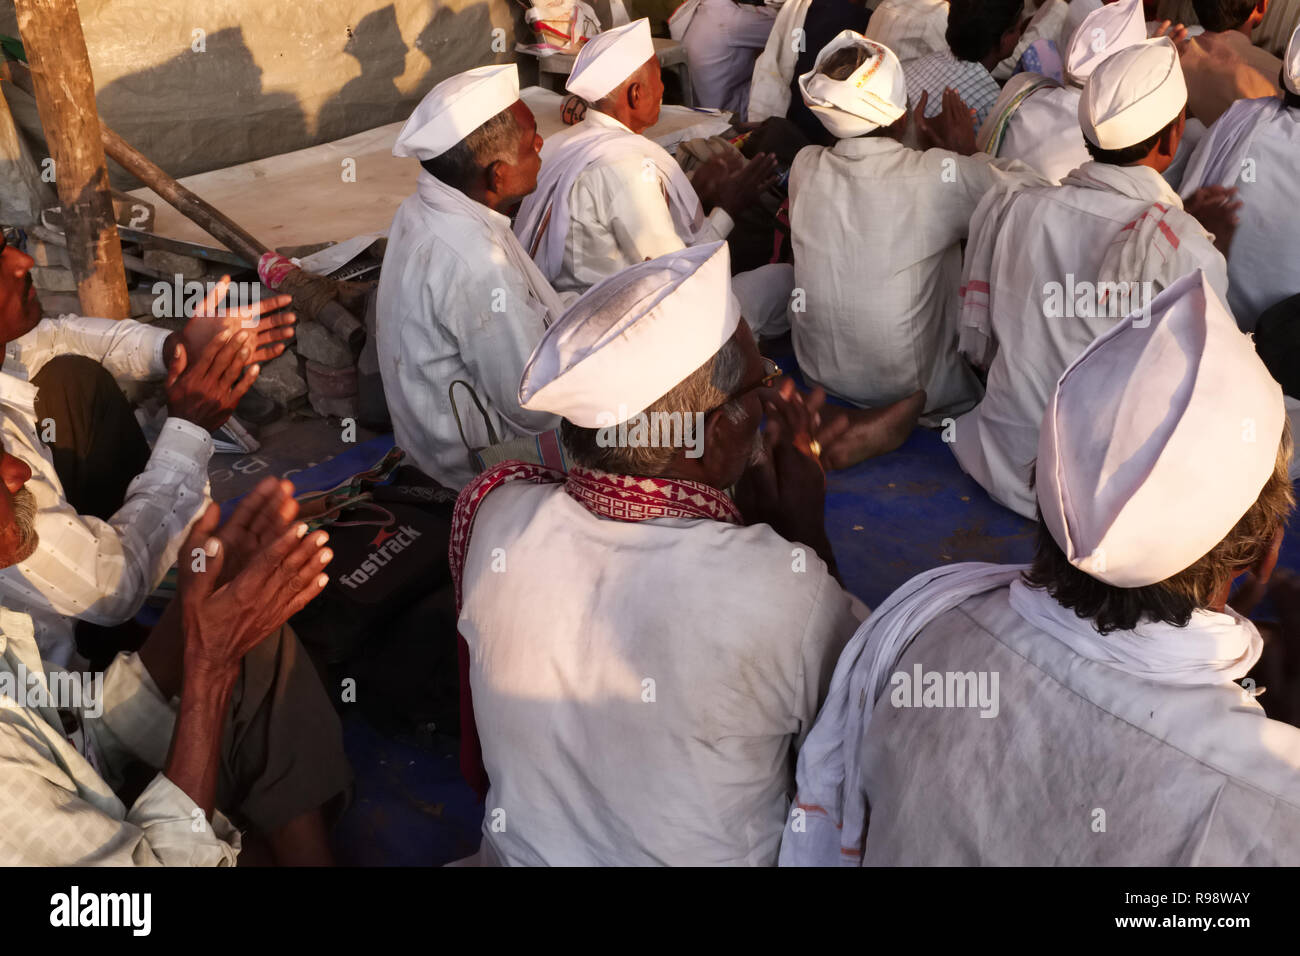 Impoverished farmers from Maharashtra state attending a political rally at Azad Maidan, Mumbai, India, a popular rallying point in Mumbai - Stock Image